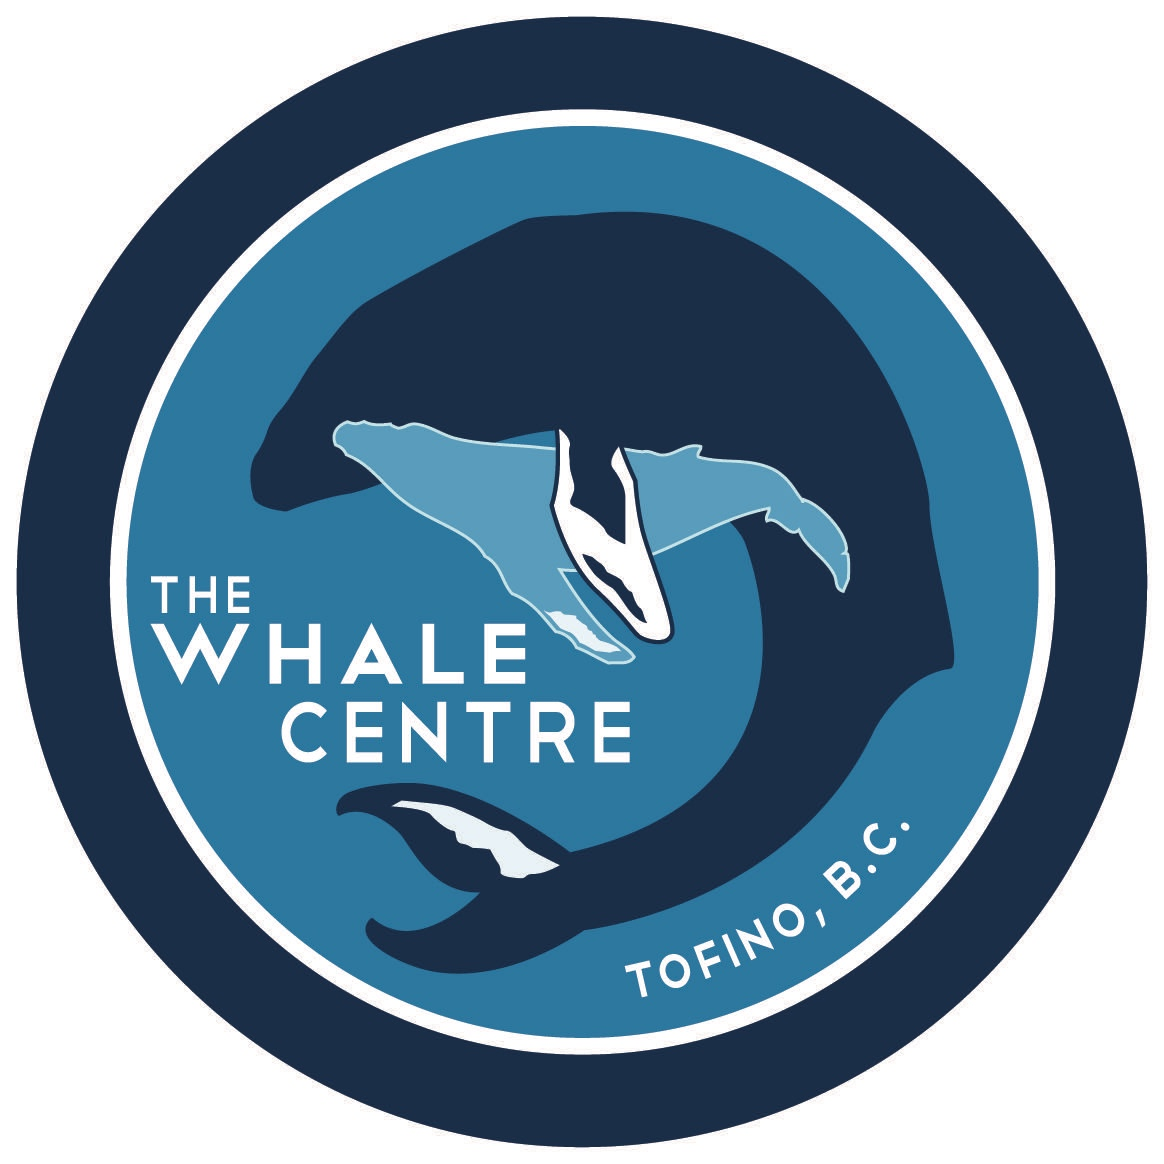 The Whale Centre, Tofino, BC